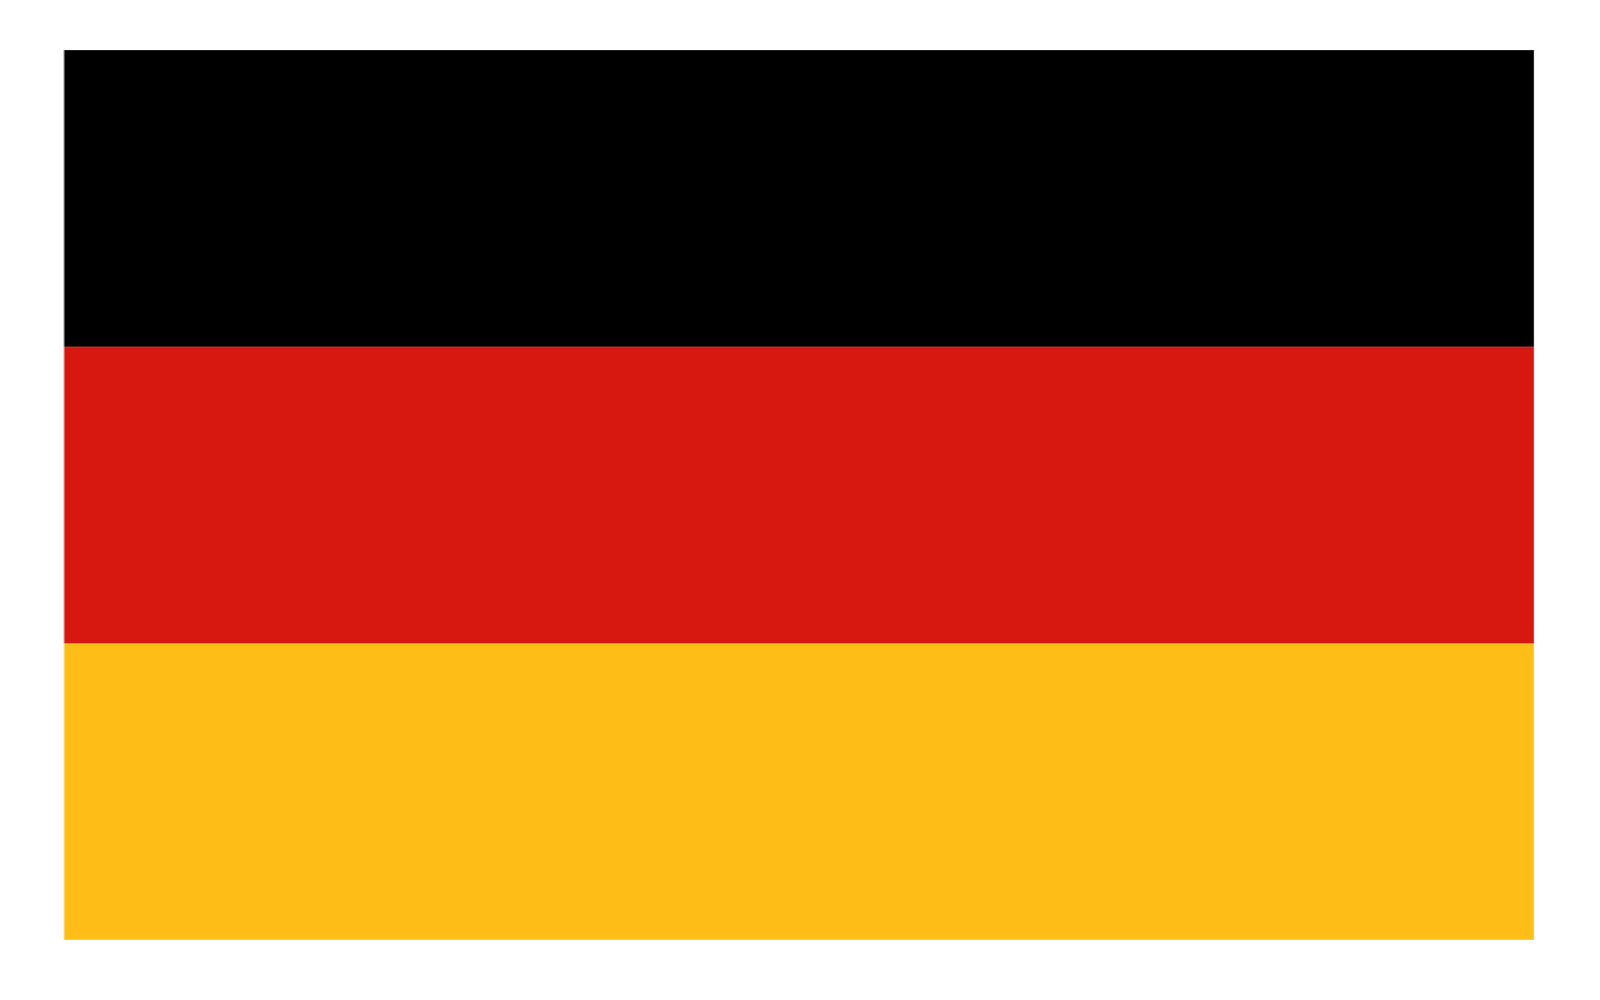 German Flag Image Picture 23915